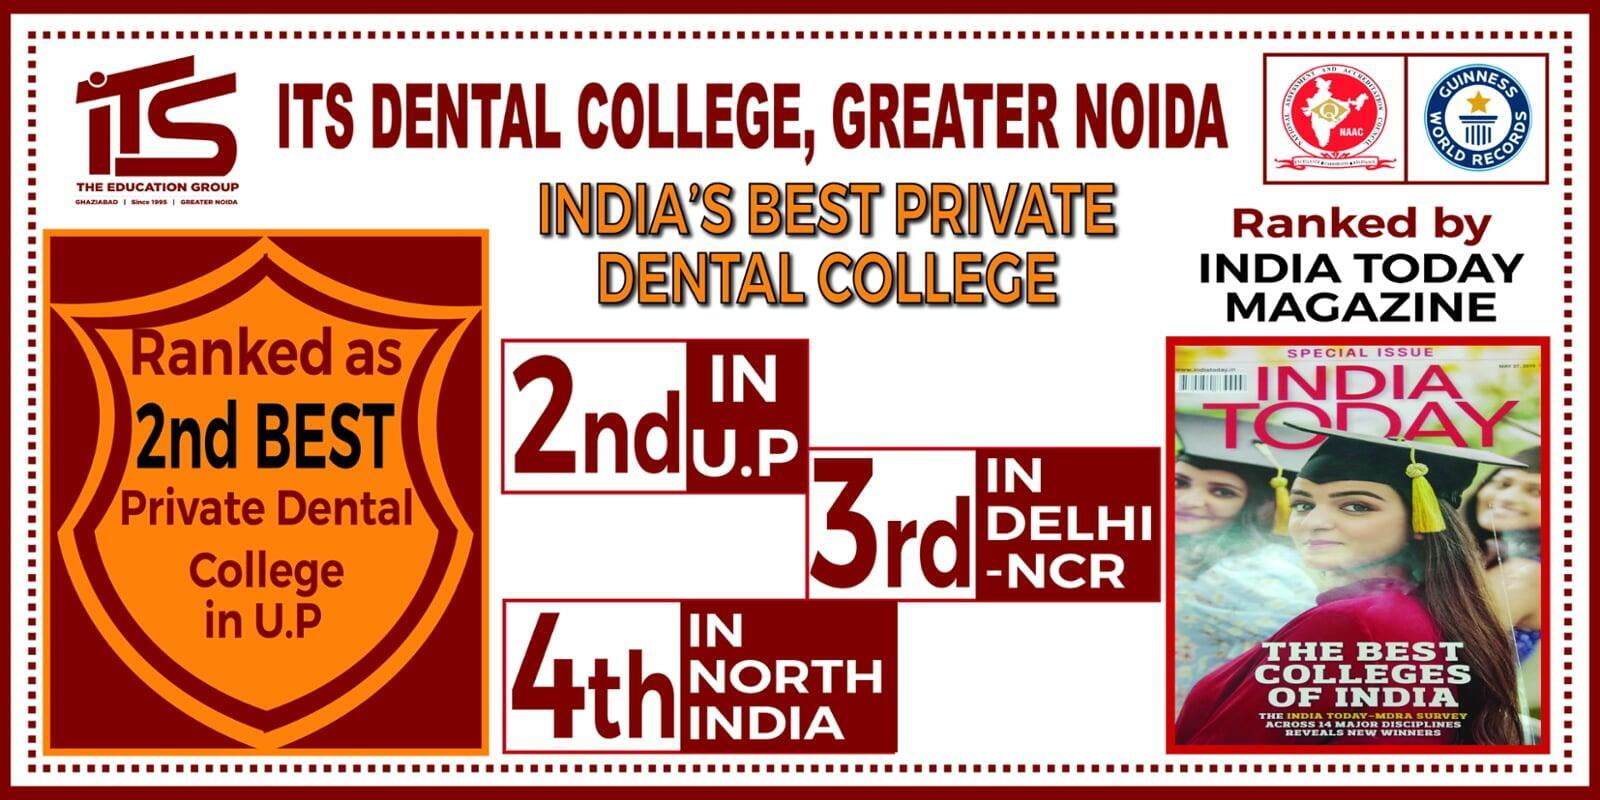 ITS DENTAL COLLEGE INDIA TODAY